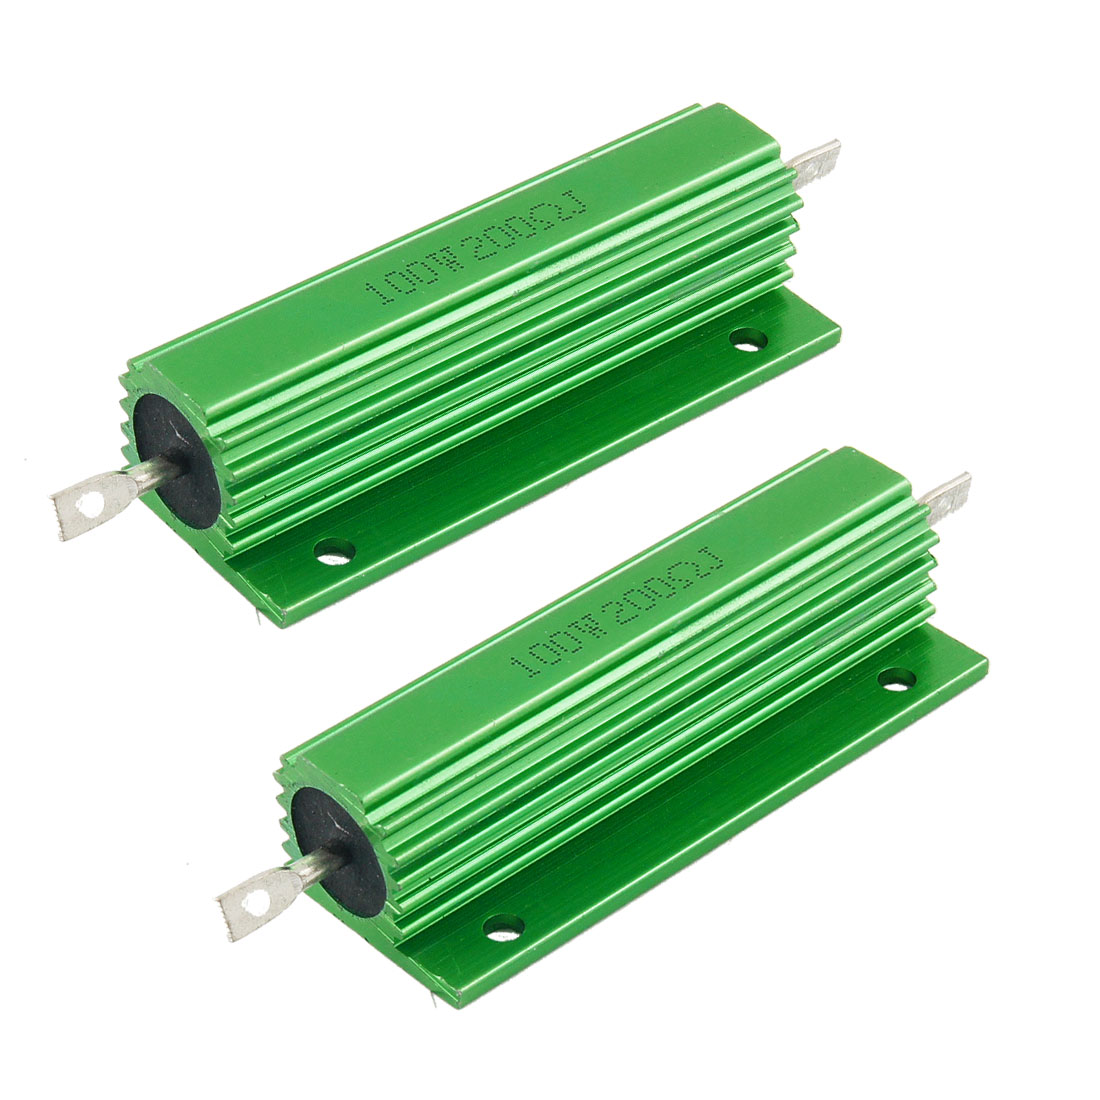 100W 200 Ohm Green Aluminum Housed Wirewound Resistors 2 Pcs